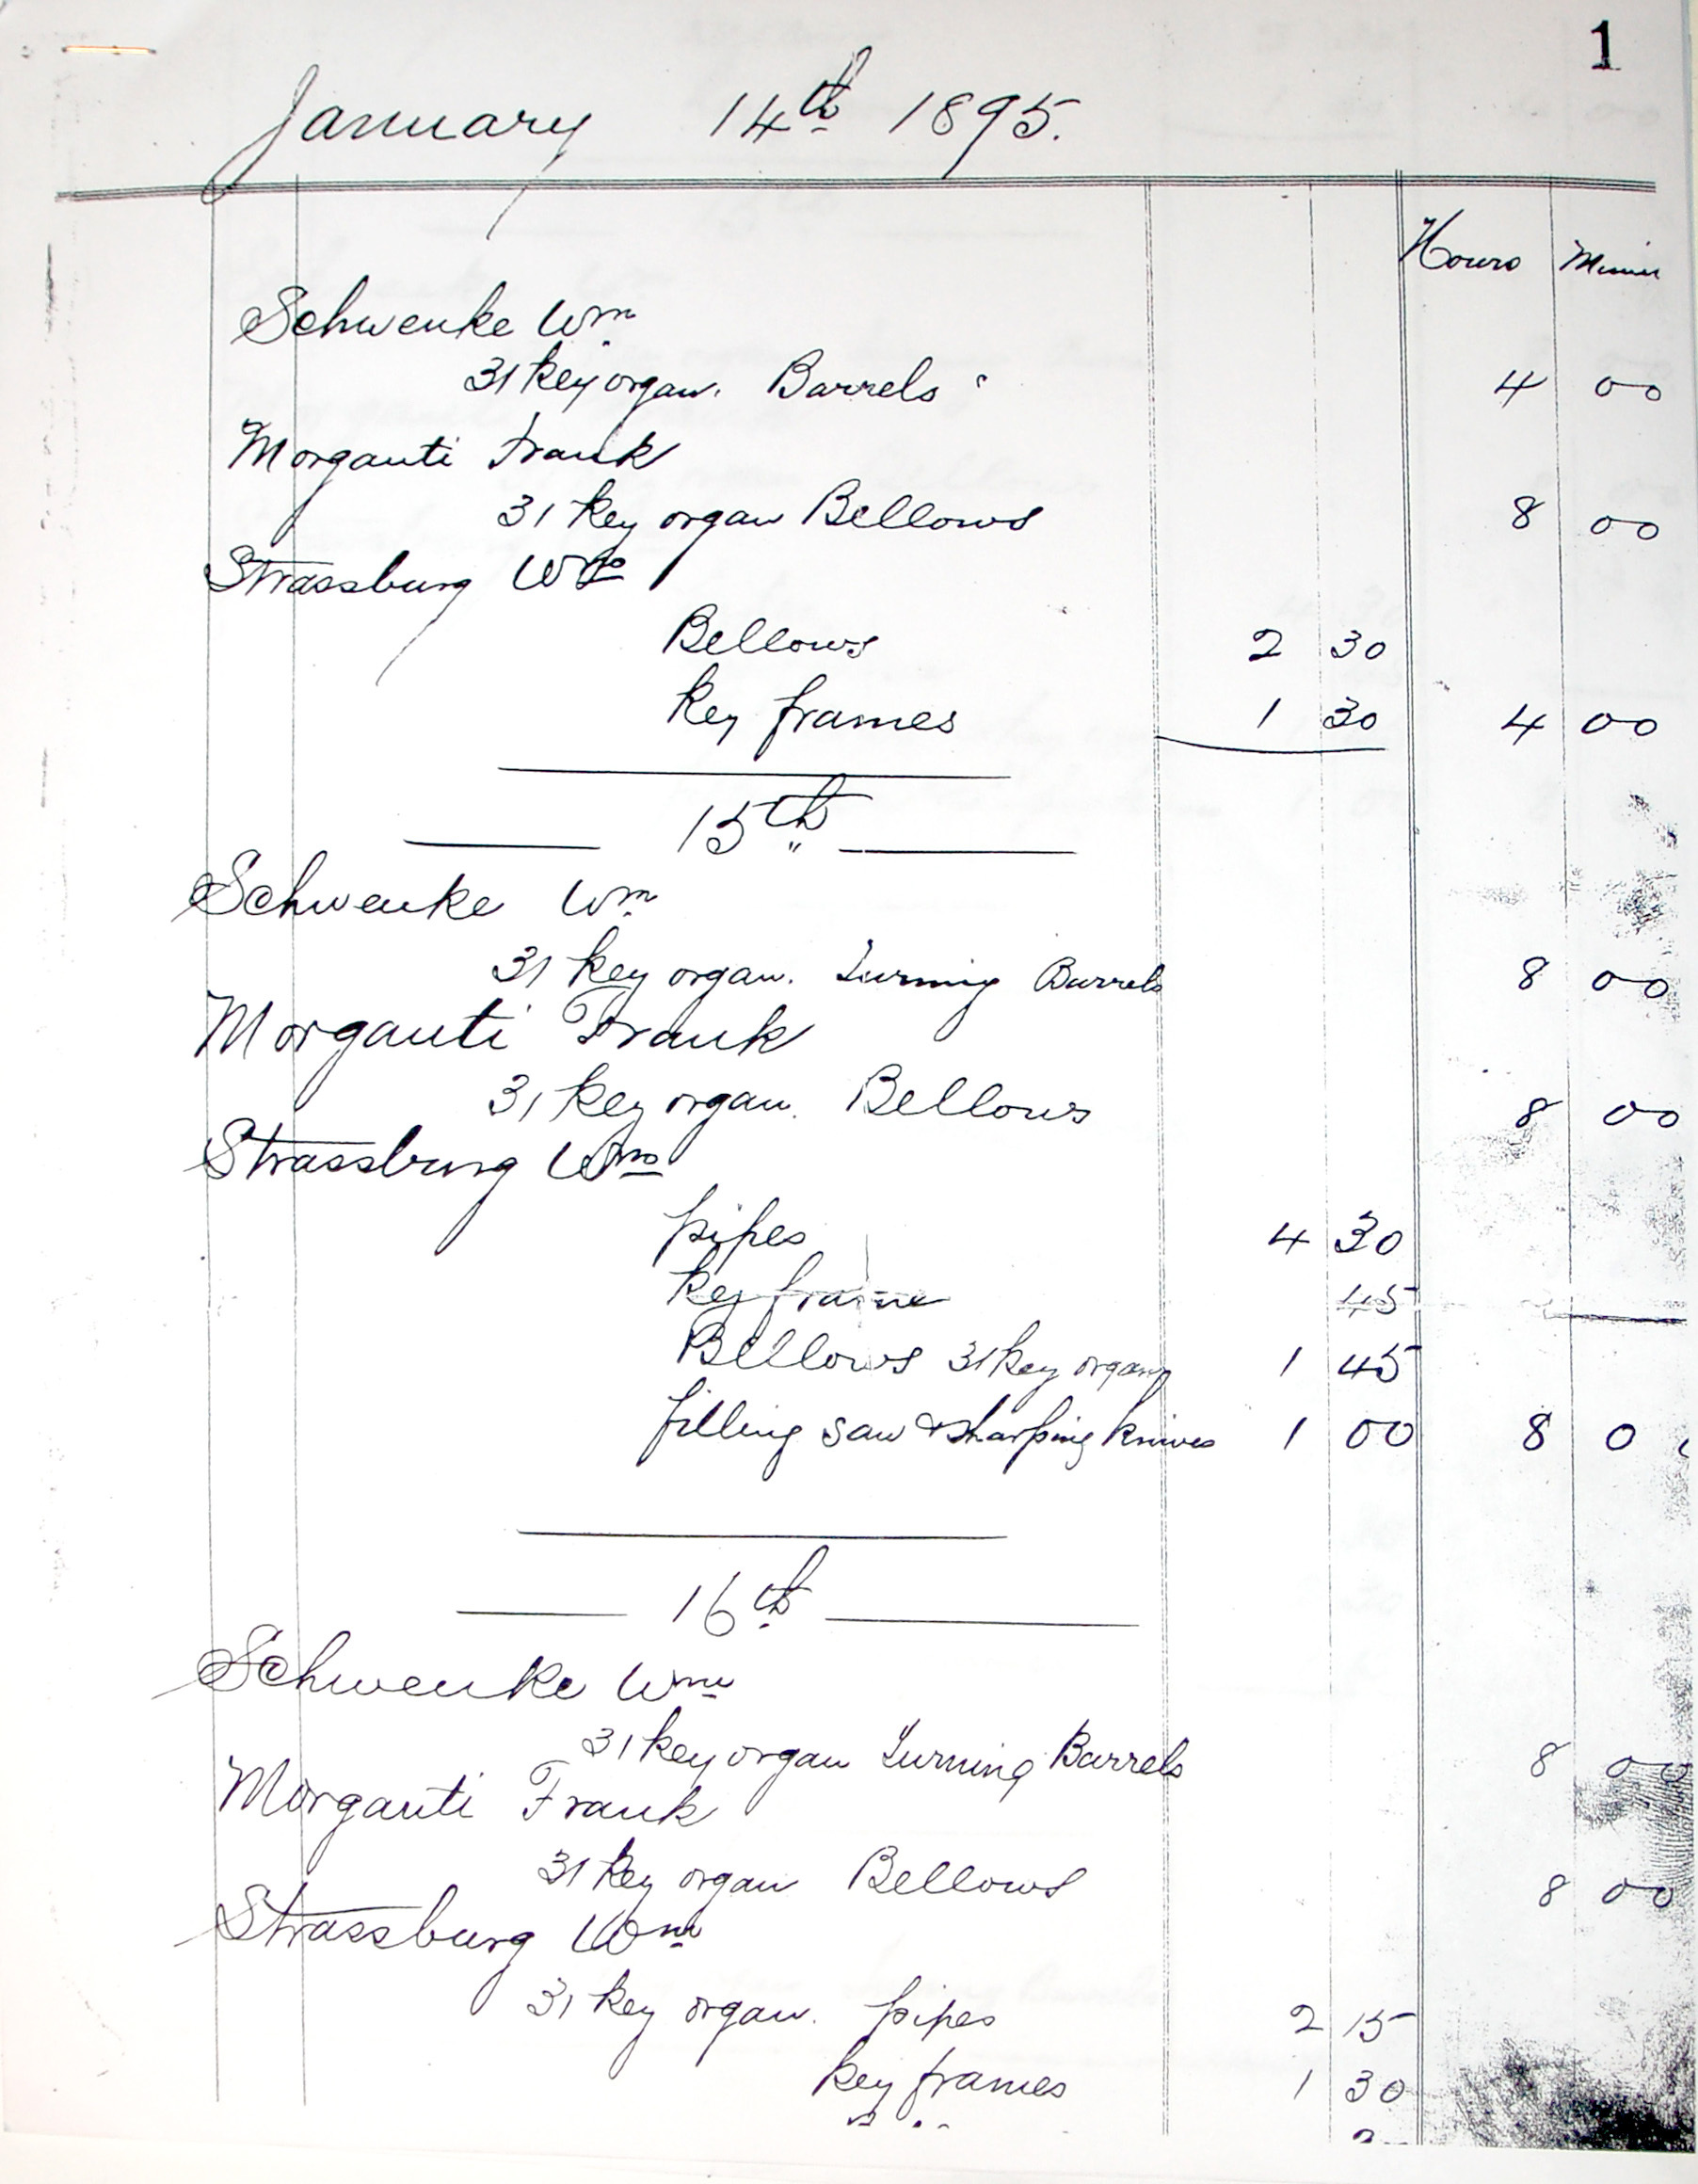 Barrel Organ Factory work ledger, Schwenke, Morganti, Strassburg (1895-01-14).jpg